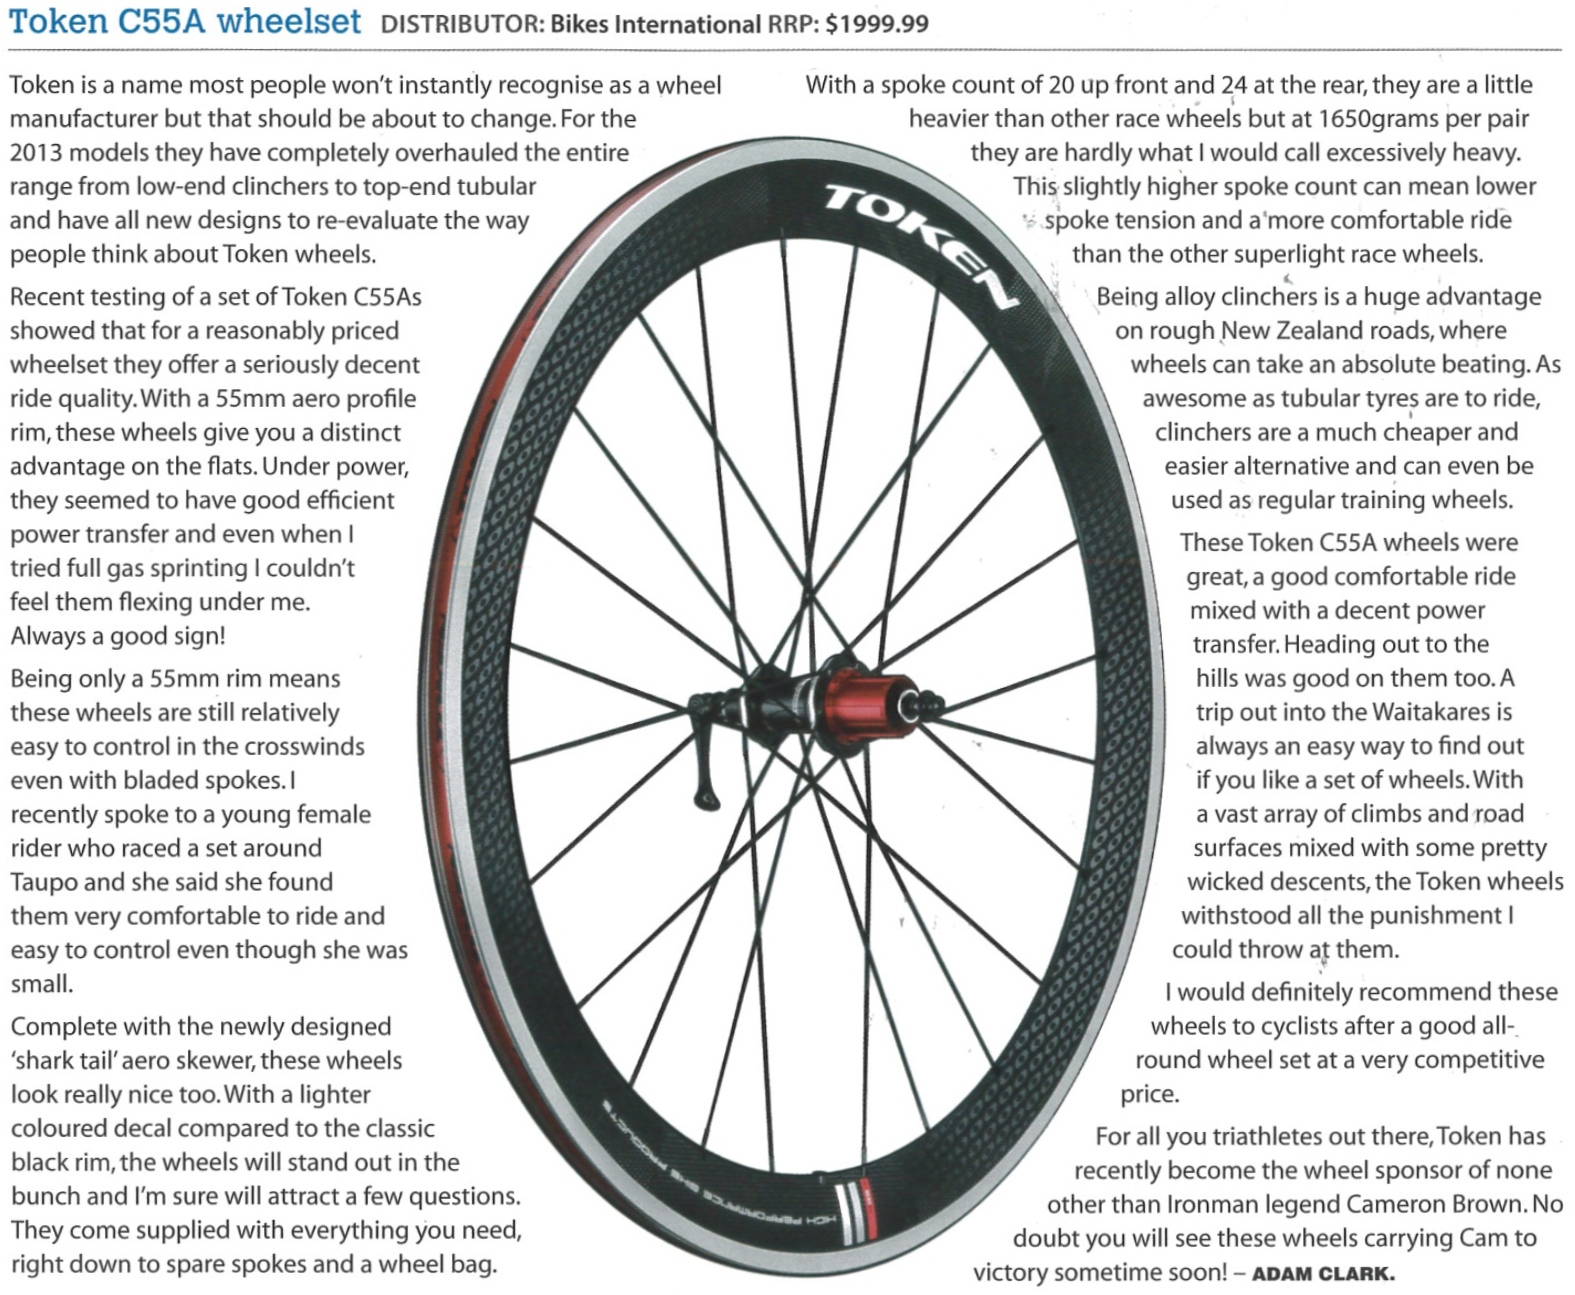 Review : C55A Wheelset (NZ Road Cyclist Magazine) | TOKEN